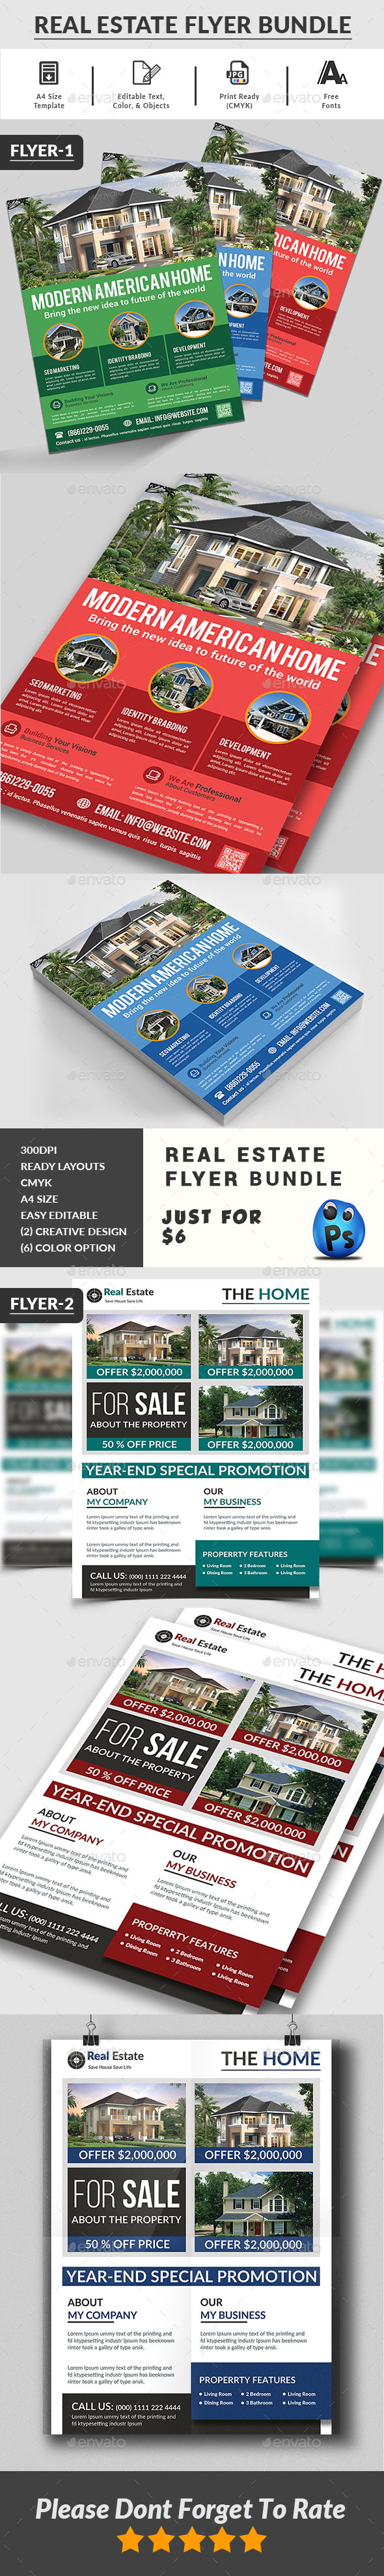 Real Estate Flyers Bundle Templates - Corporate Flyers